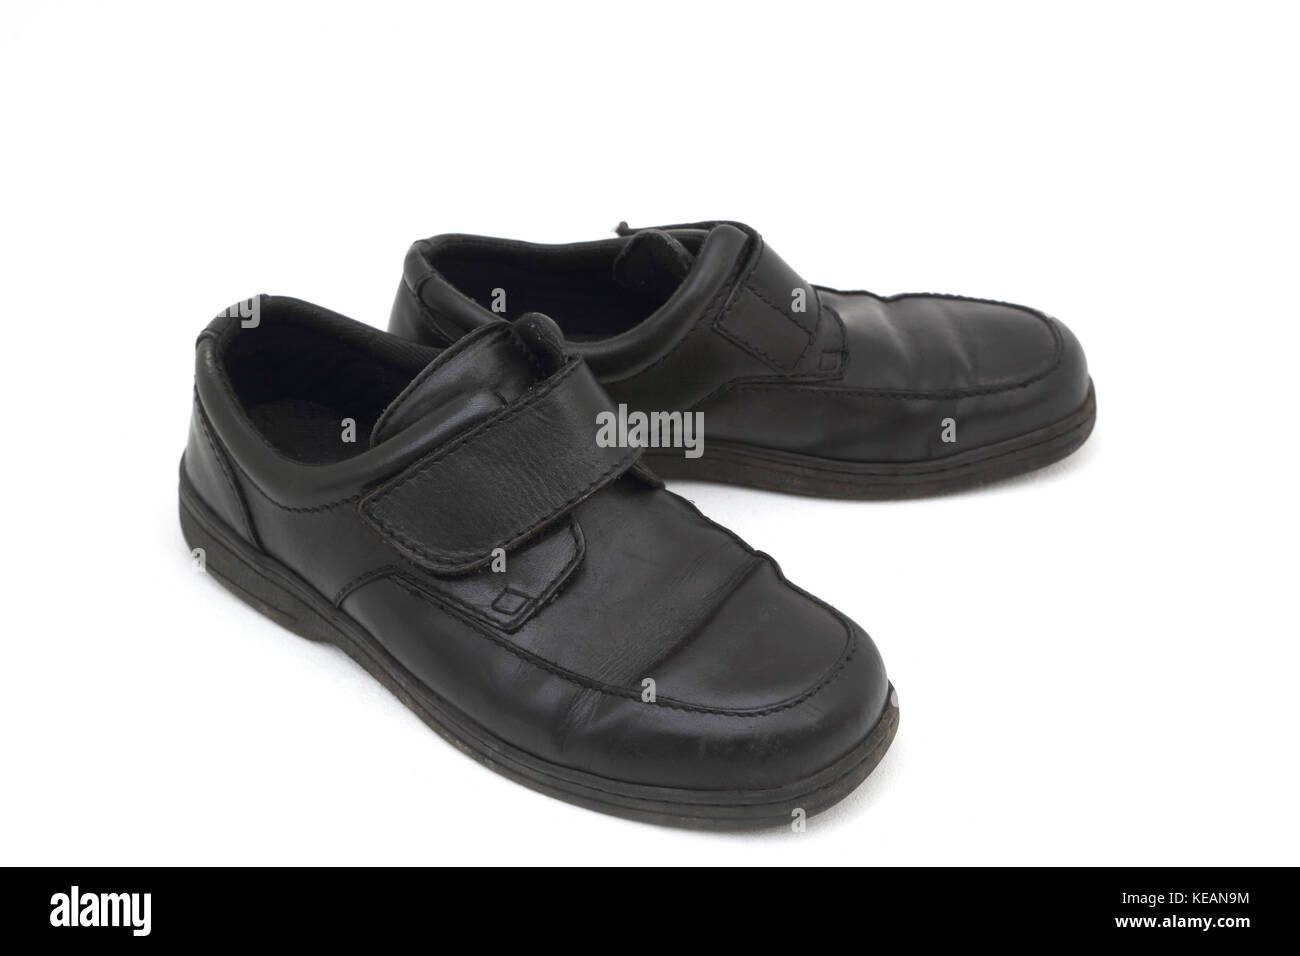 Men's Black Leather Shoes with Velcro - Stock Image